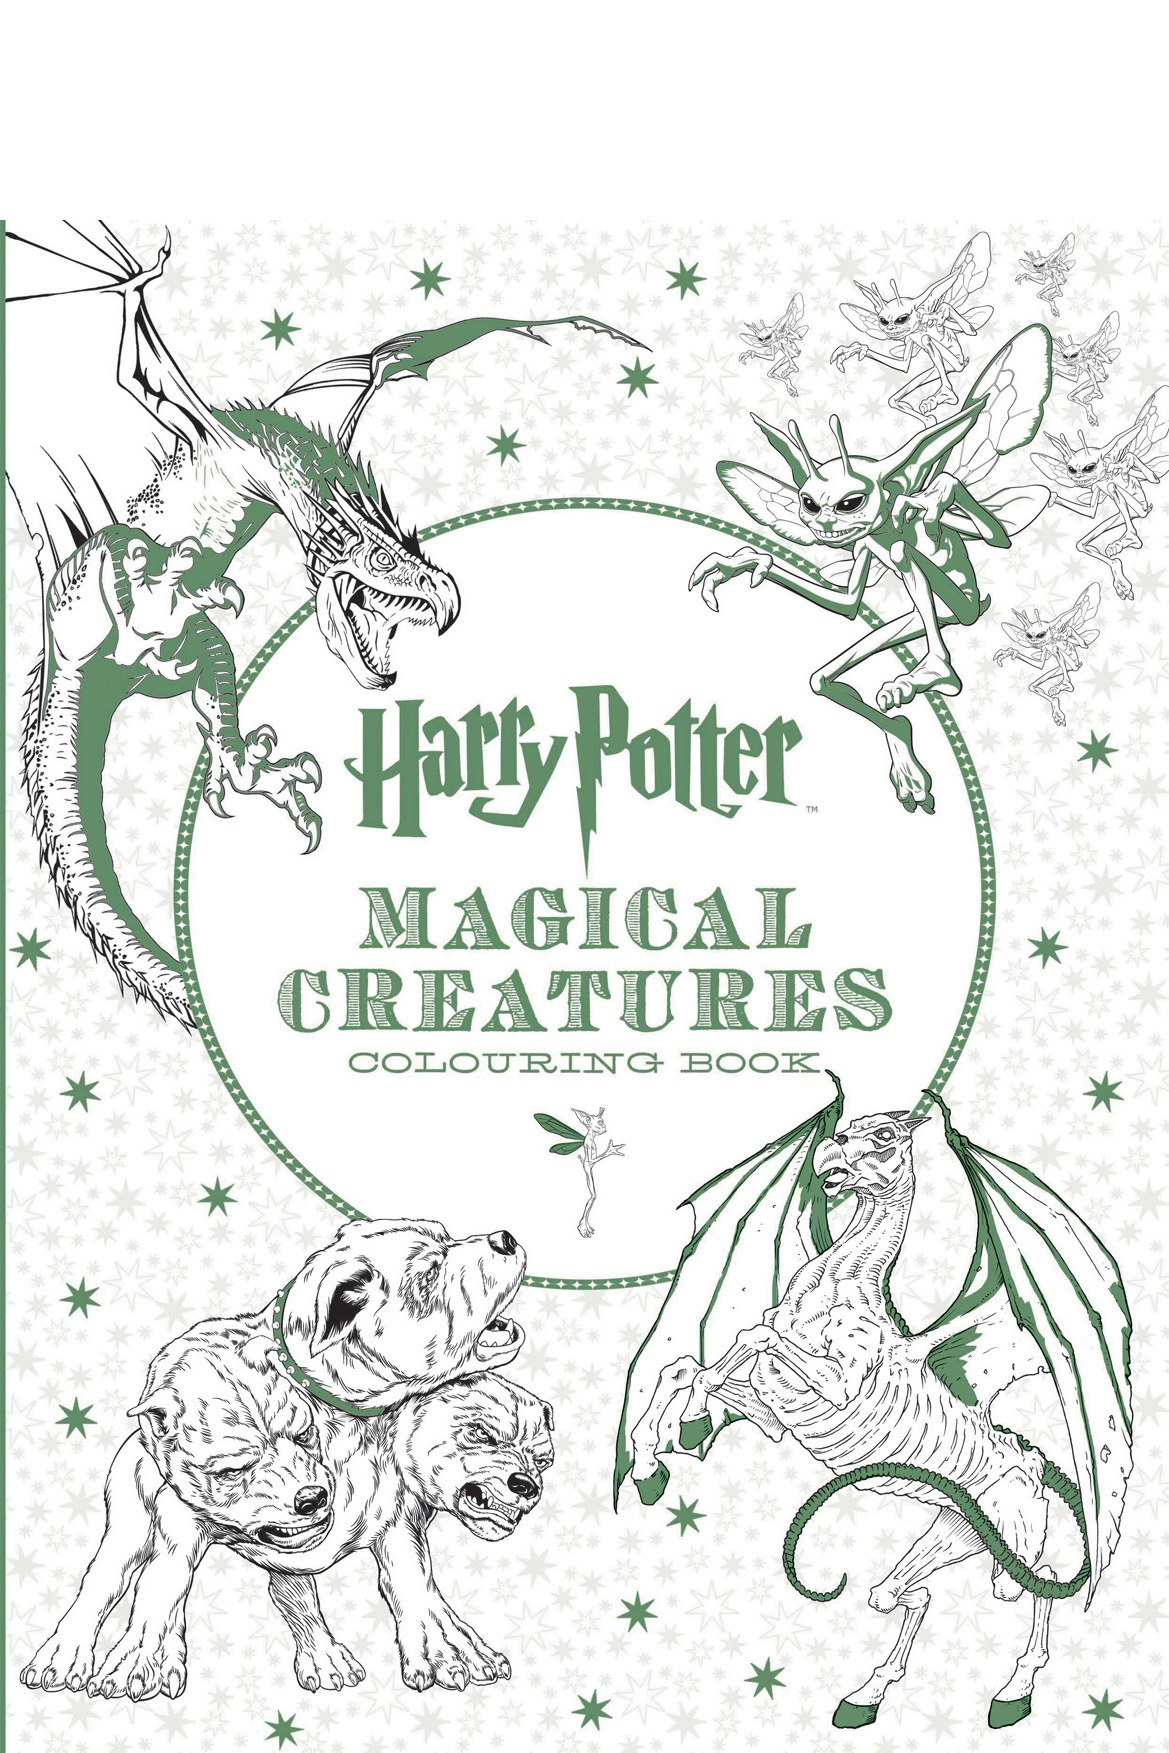 Harry Potter Magical Creatures Colouring Book Paperback